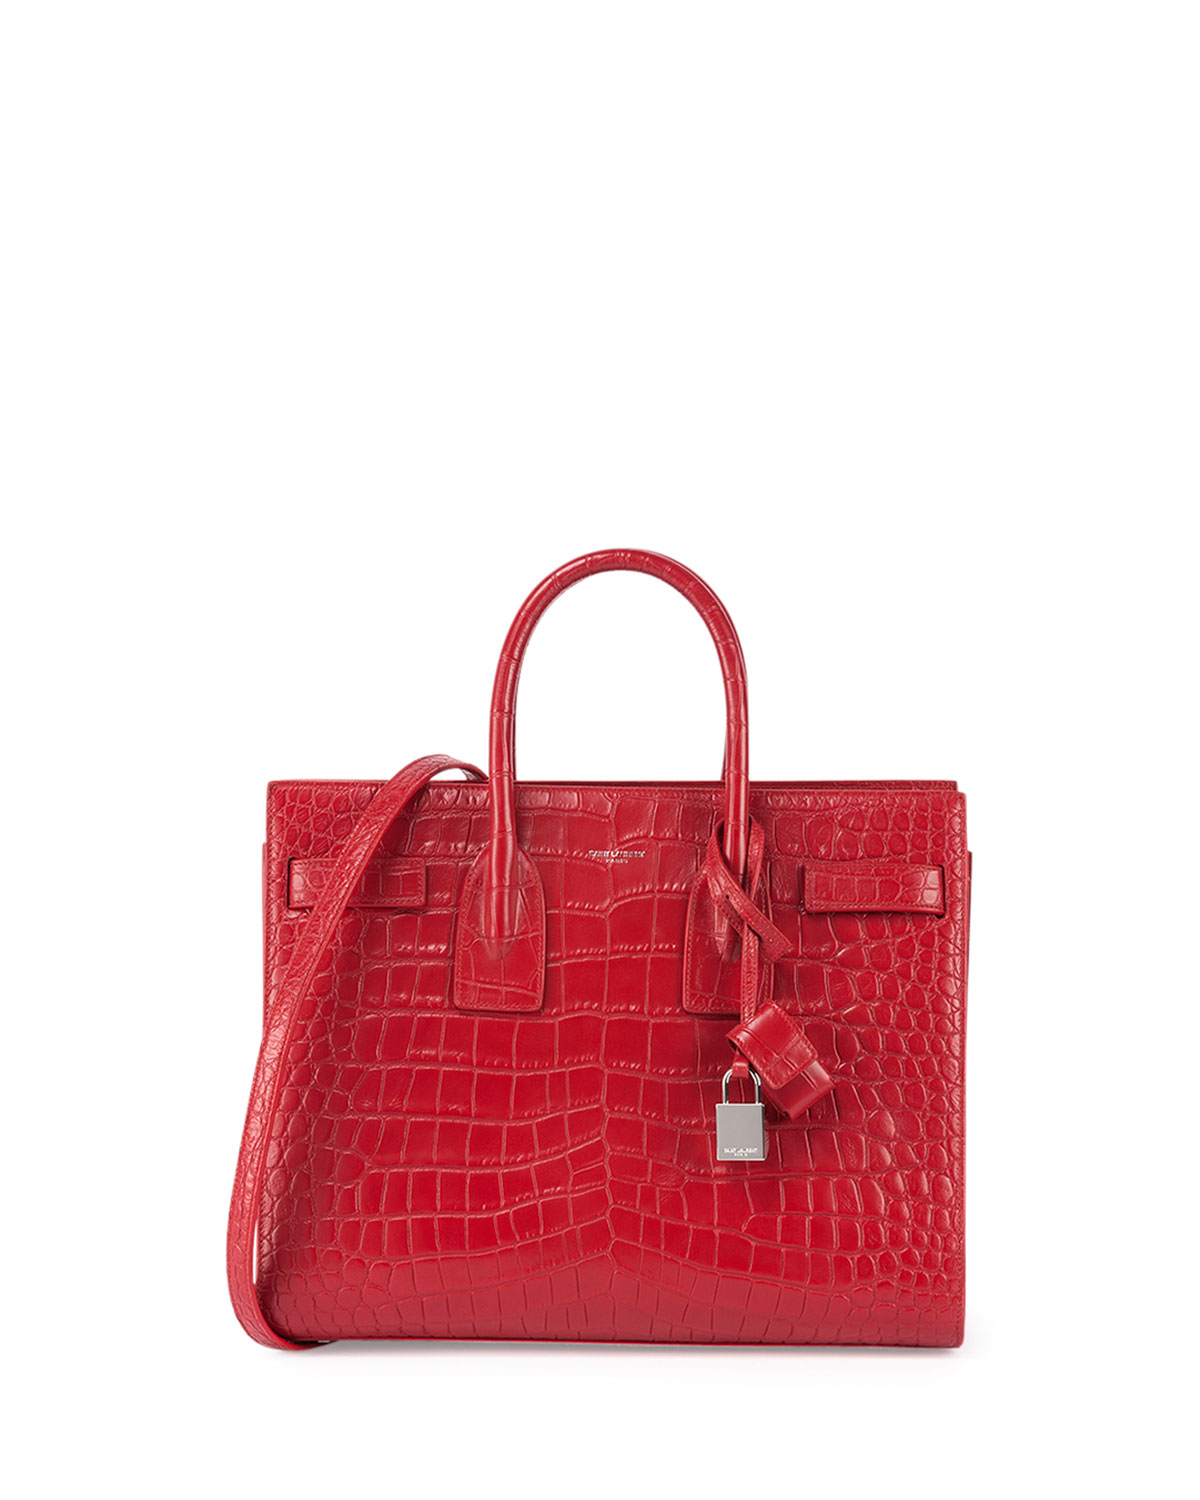 Saint Laurent Sac de Jour Crocodile-Stamped Satchel Bag 2d79d44db3031